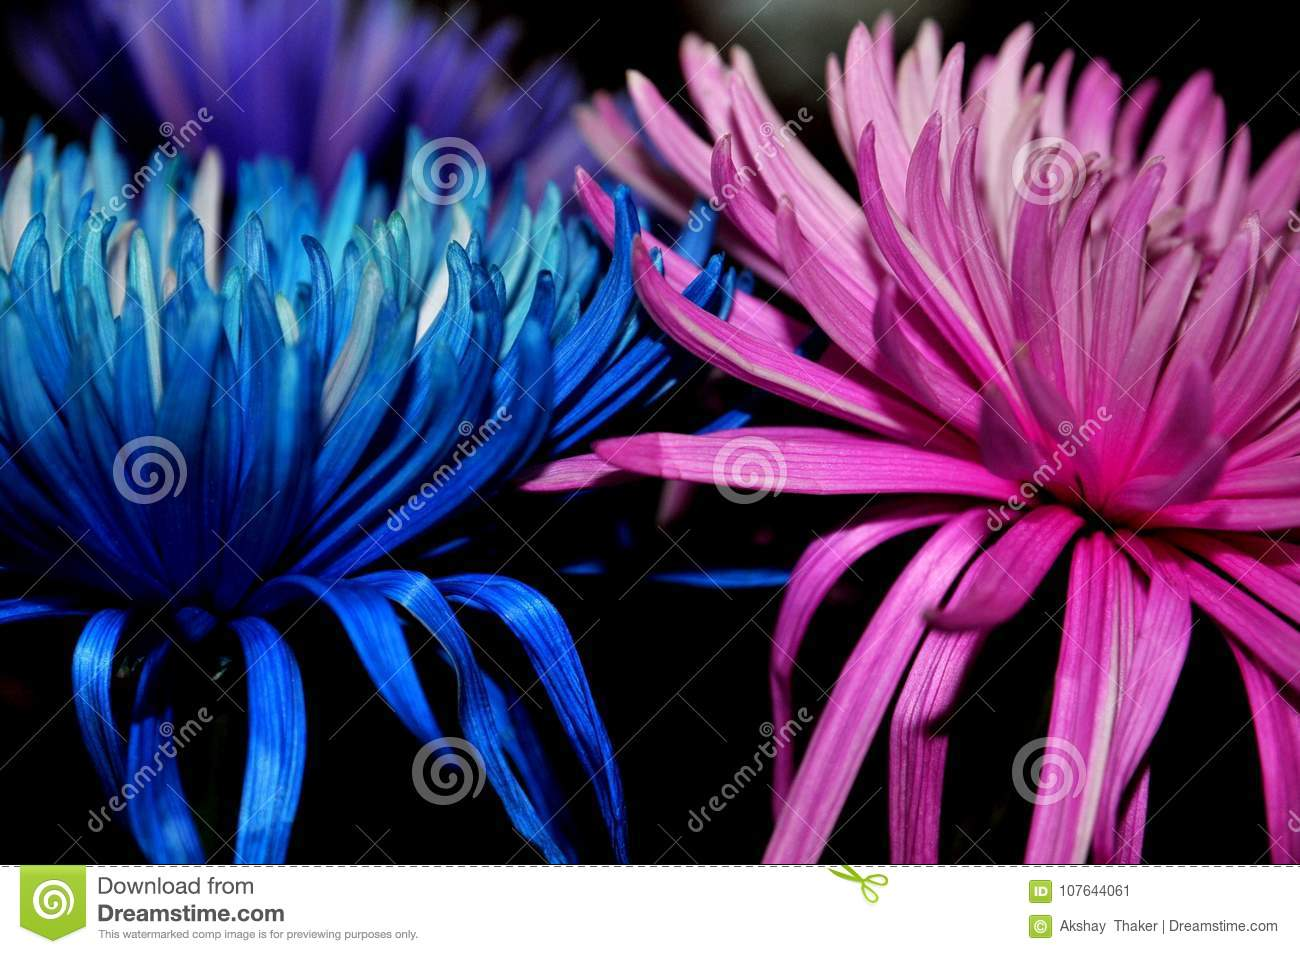 `Be Gentle, Love and Stay together` Blue and Pink flower kept together to create an inspirational image.